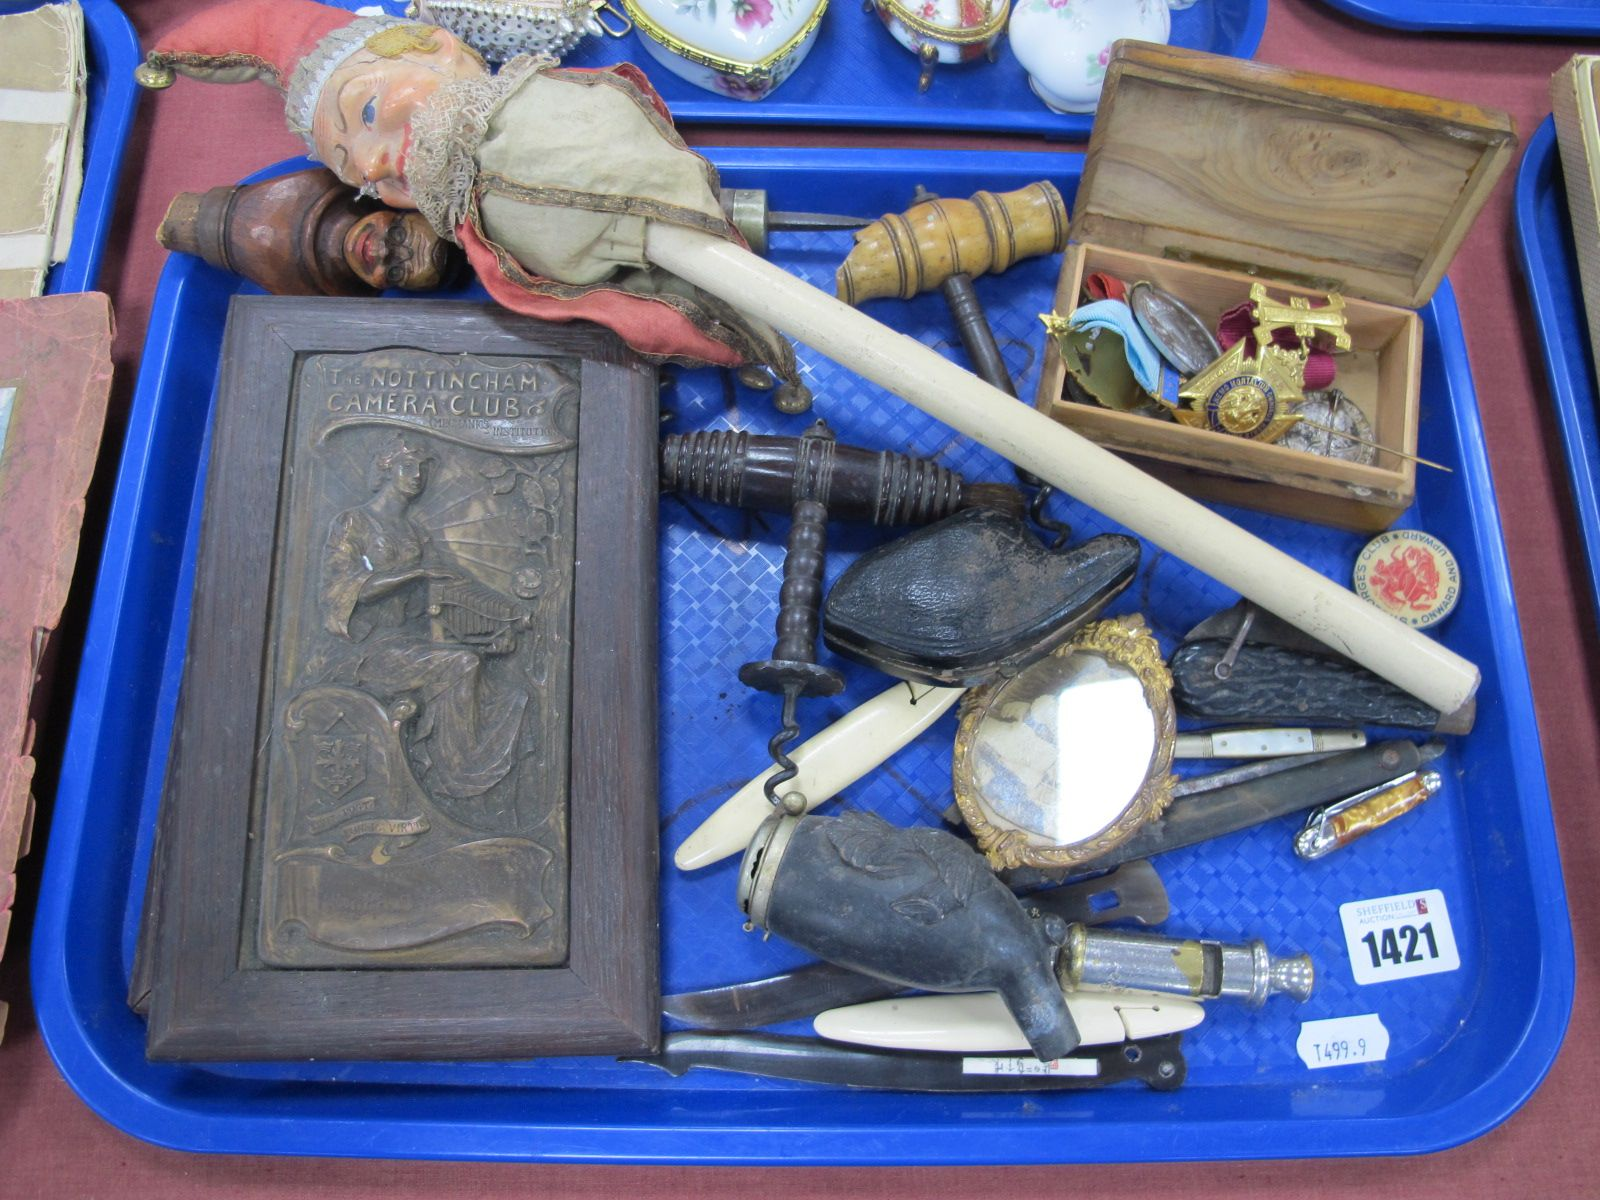 A XIX Century Child's Rattle, in the form or Mr Punc.h. Two early XX Century Nottingham camera